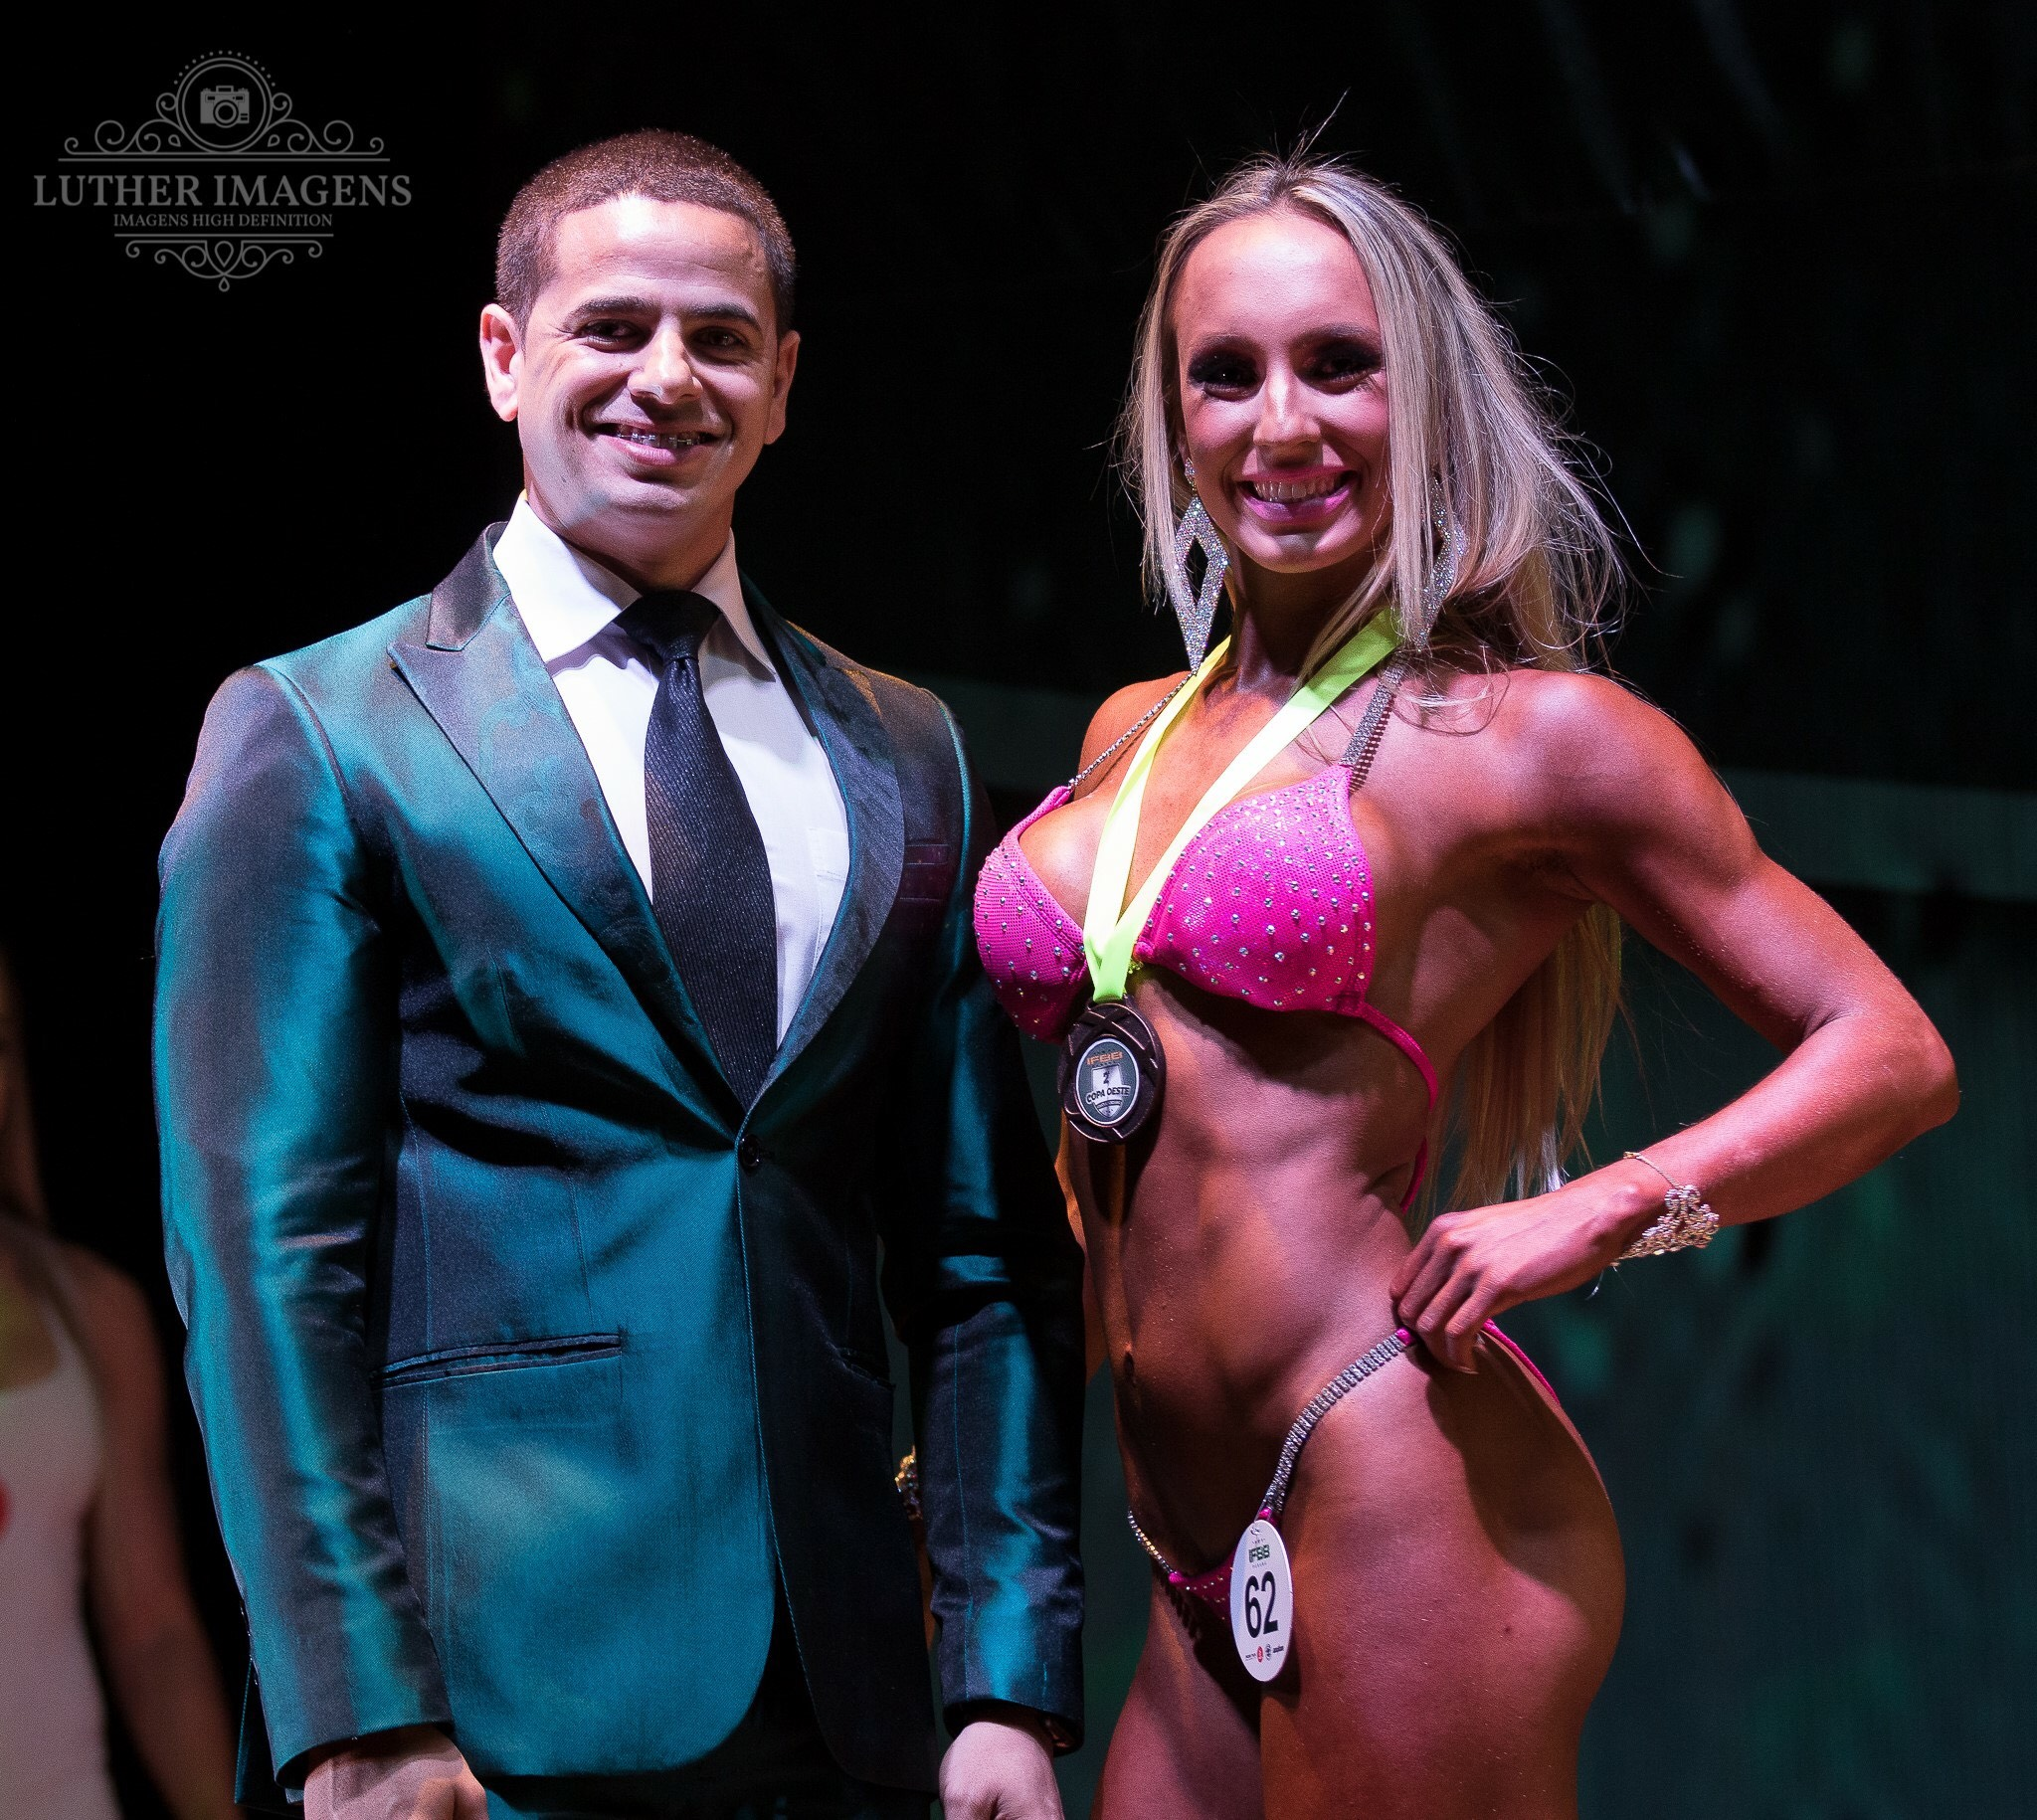 Gabriel Marrom and Marina Beraldinelli at the IFBB Paraná